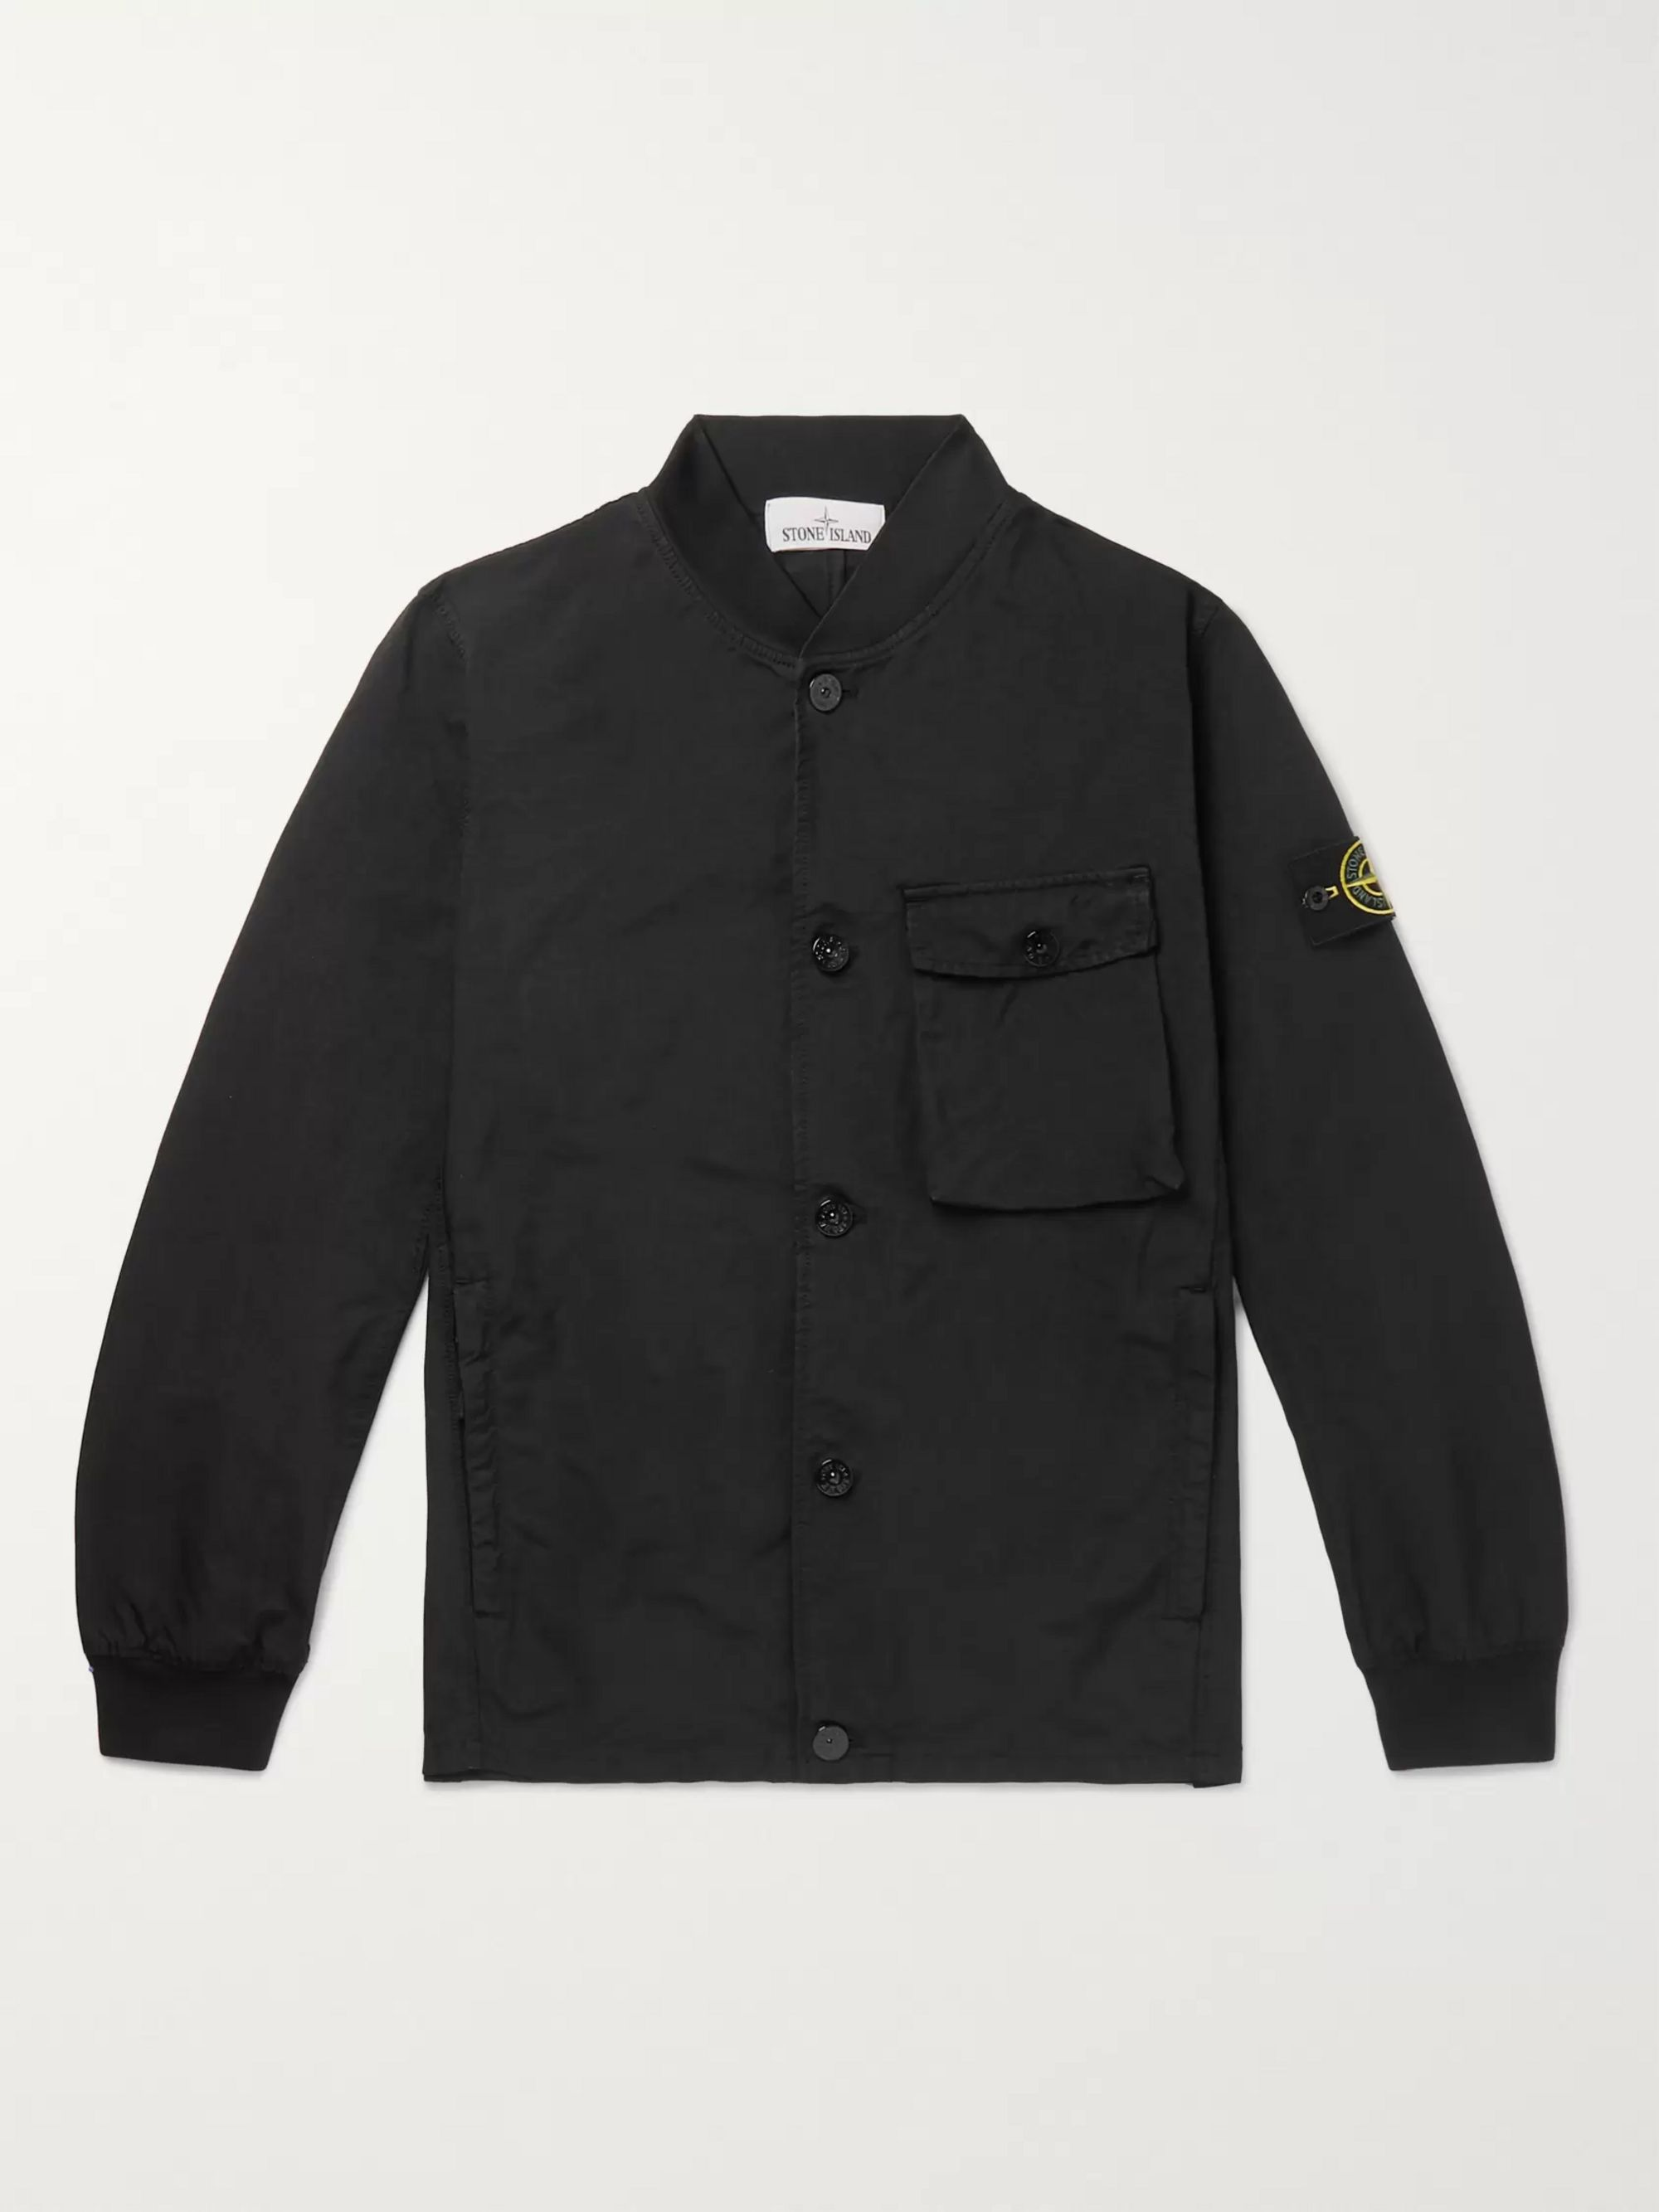 Stone Island Logo-Appliquéd Garment-Dyed Canvas Bomber Jacket